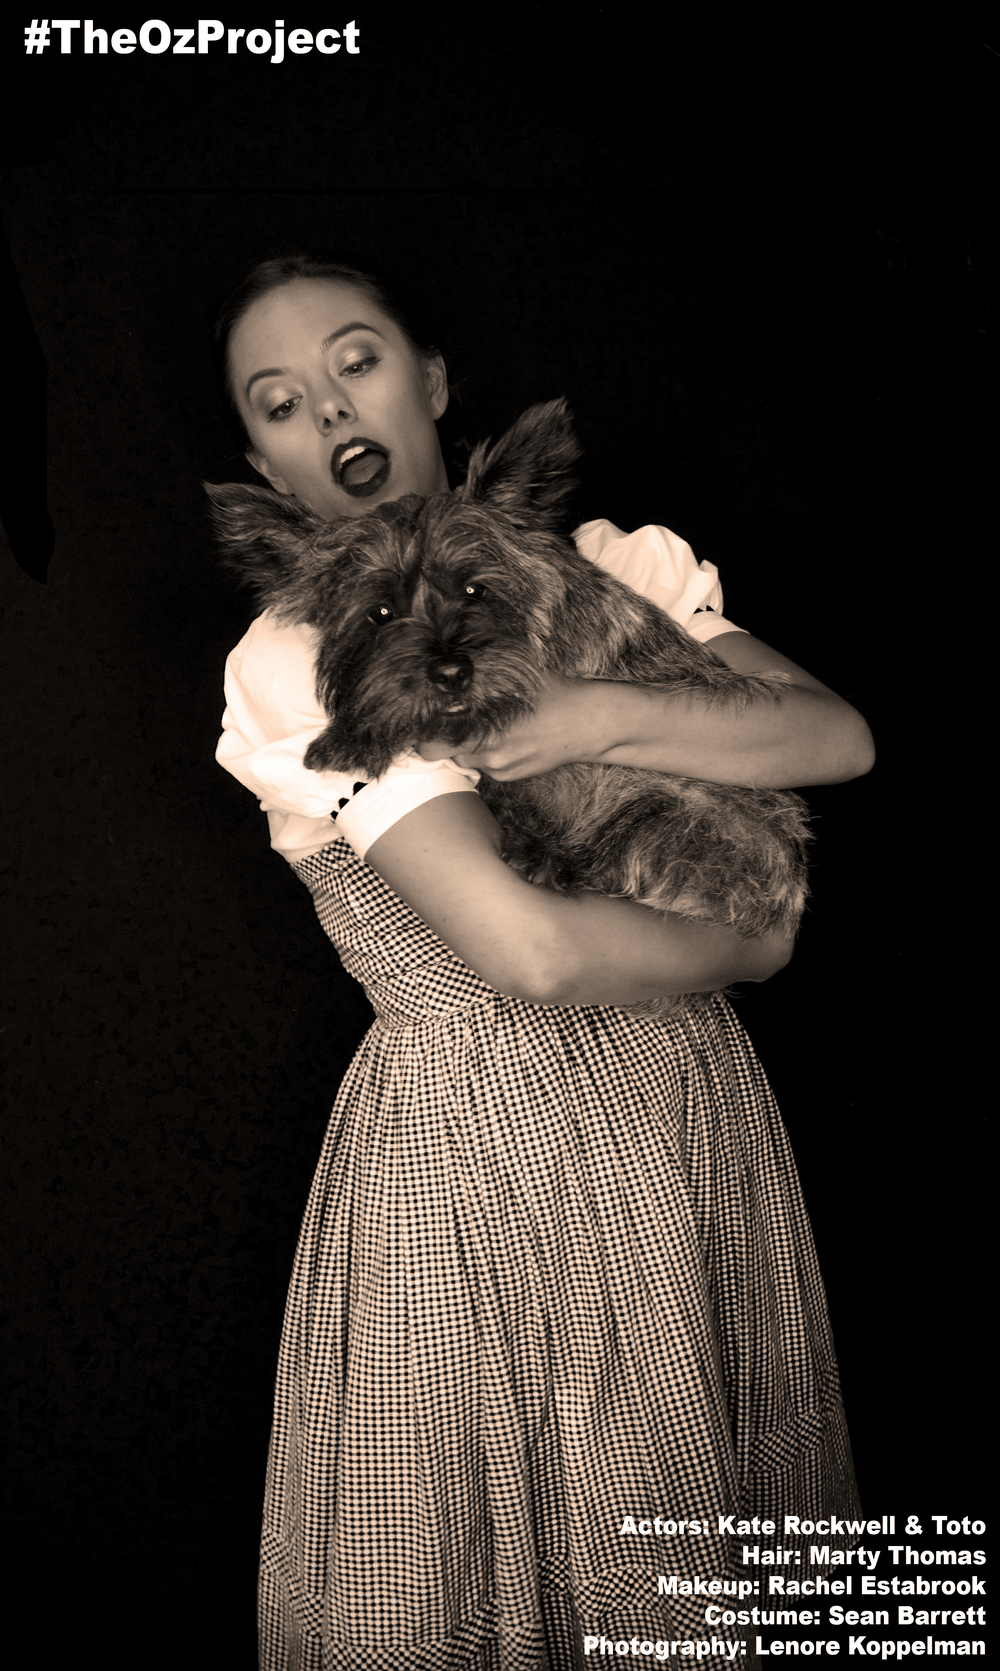 Kate Rockwell and Toto 3 TOP sepia.jpg